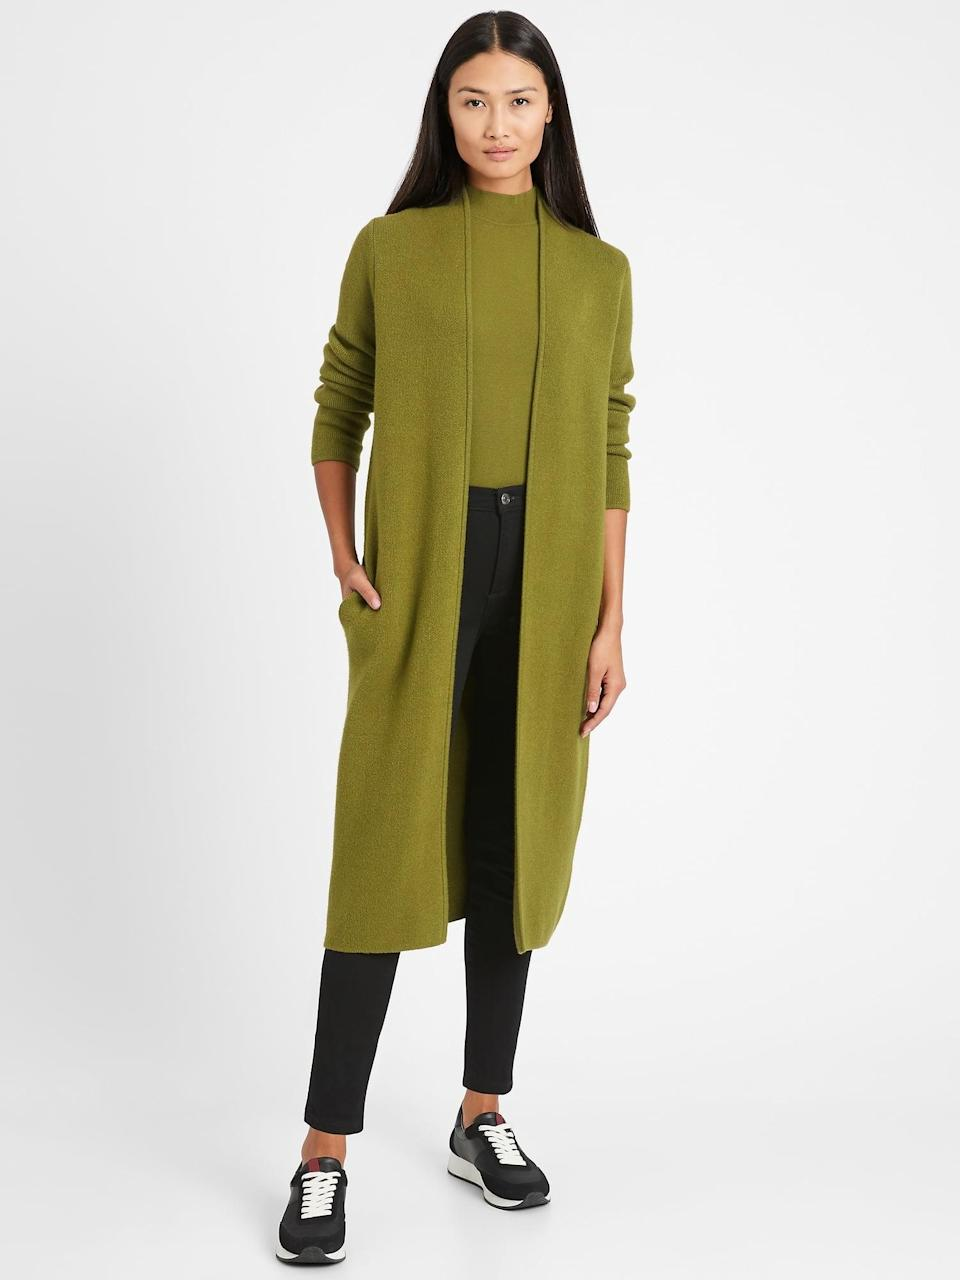 <p>Many are suggesting open air or well-ventilated Thanksgiving dinners. We thought the <span>Banana Republic Birdseye Duster Coatigan</span> ($139) could be the perfect cover up if it gets a bit chilly!</p>